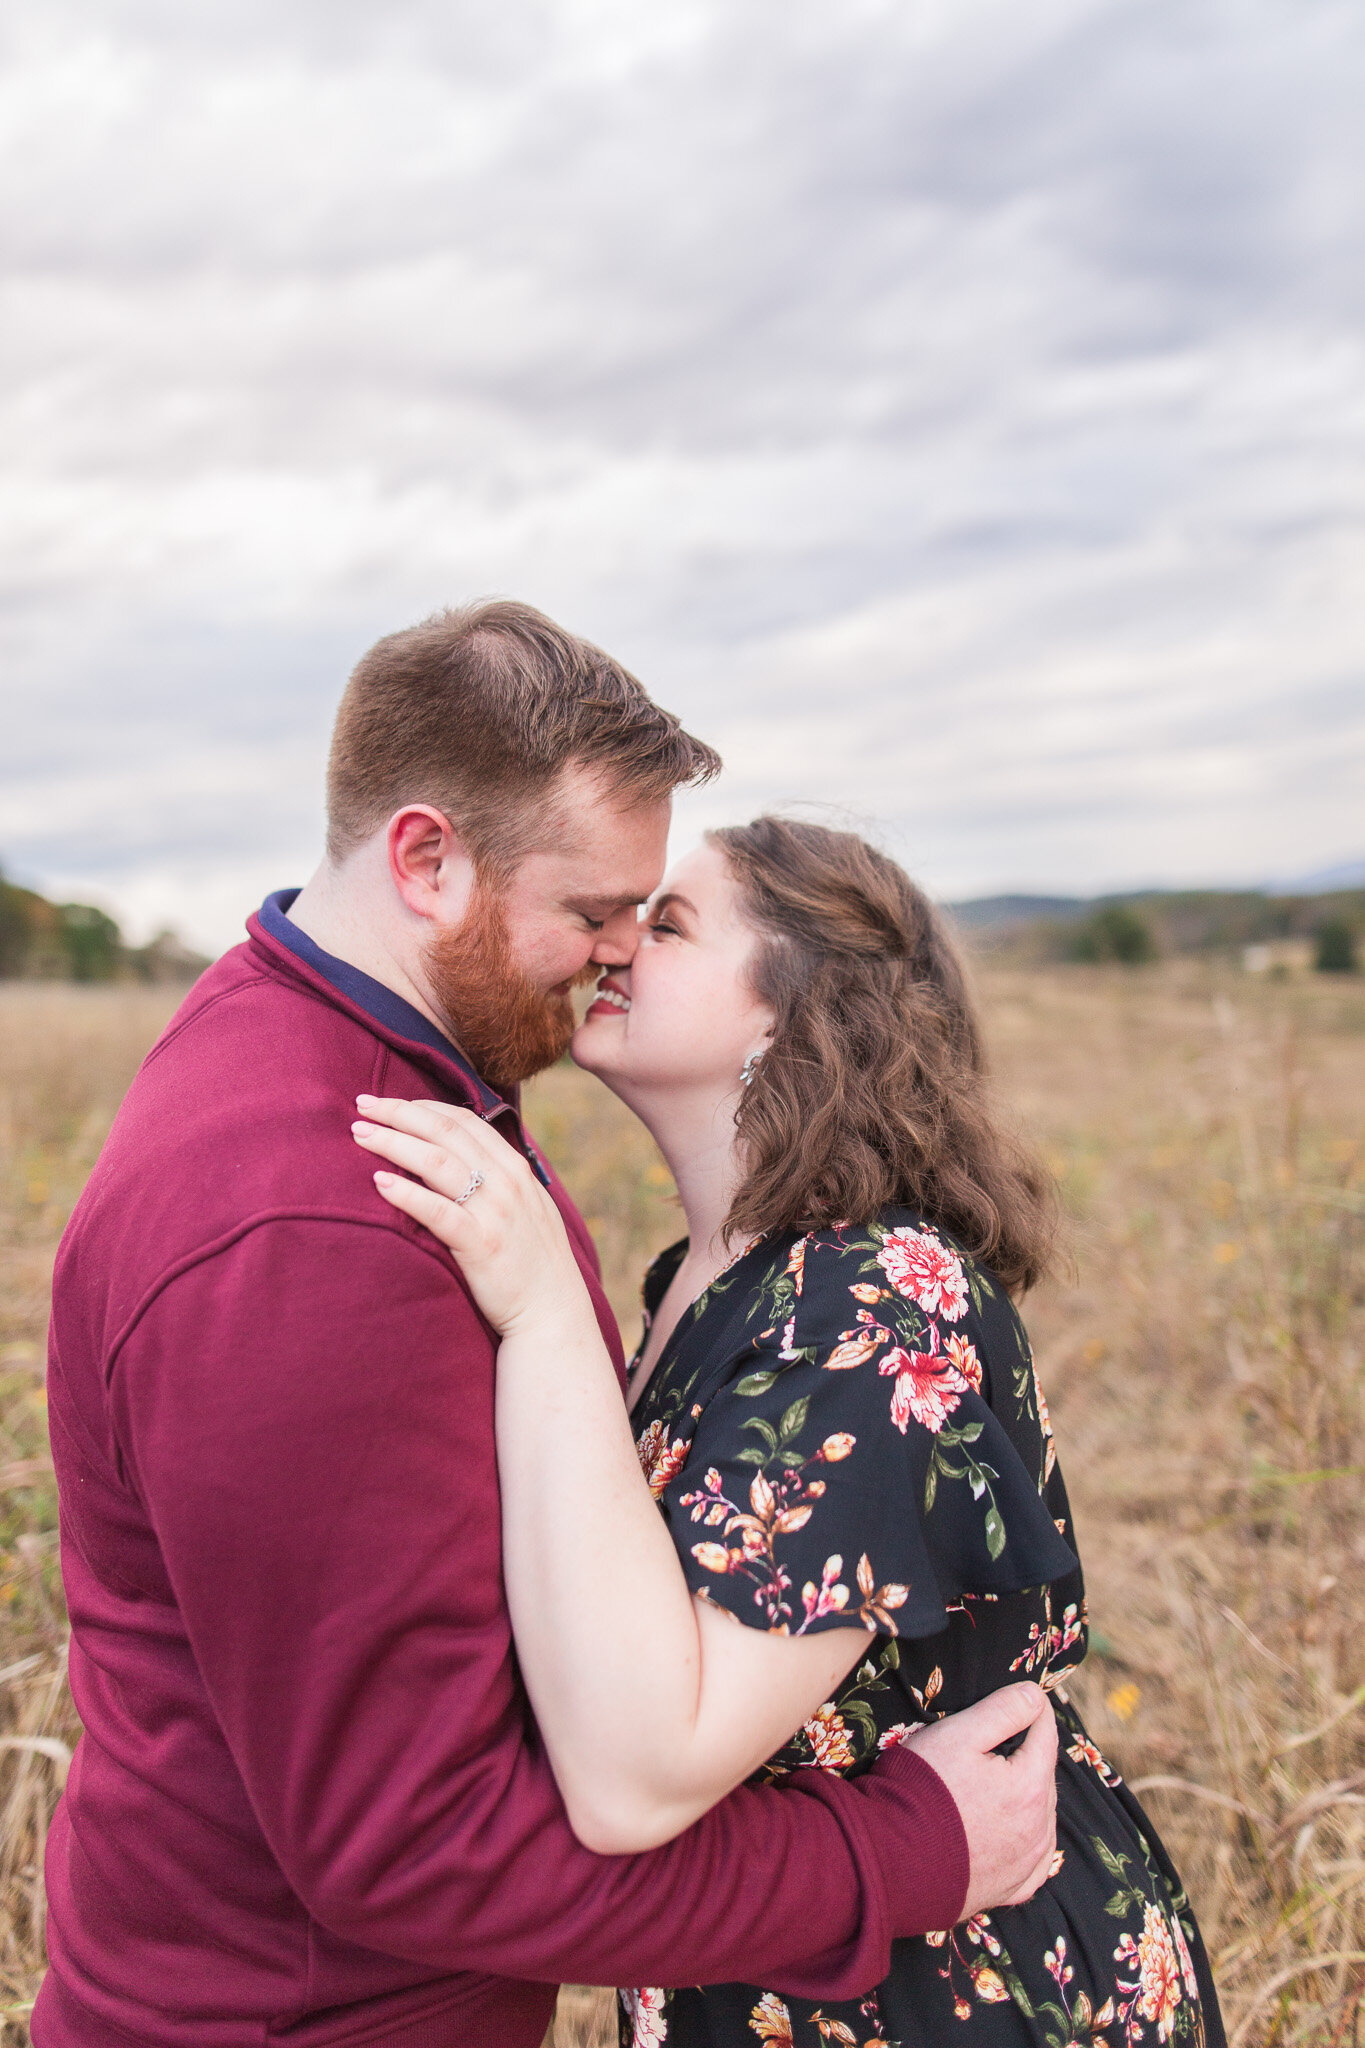 Fall Mountain View Engagement Session || Lynchburg, Virginia Wedding and Engagement Photographer || Sweet Briar College Engagement Photos